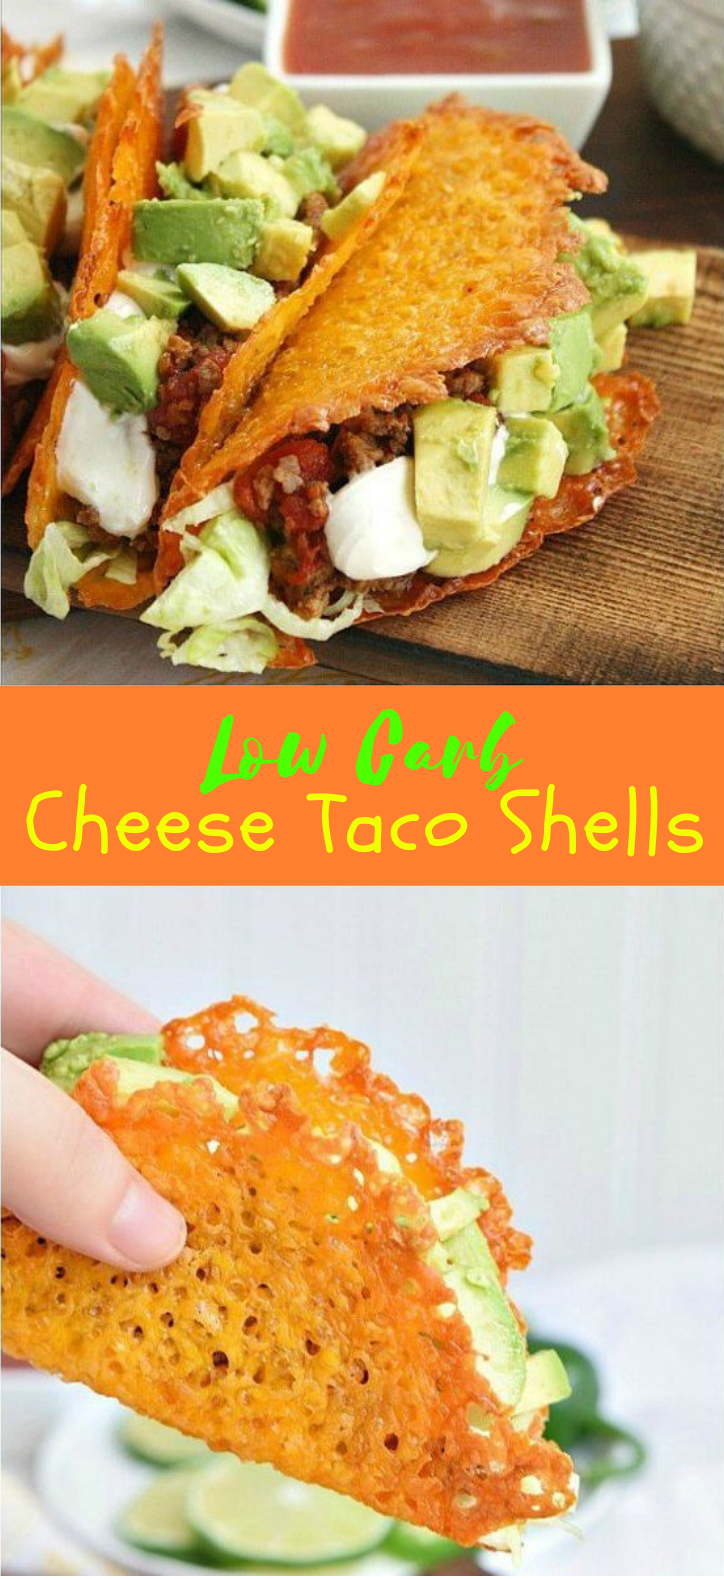 CHEESE TACO SHELLS FOR A LOW CARB TACO NIGHT! #LowCarb #Taco